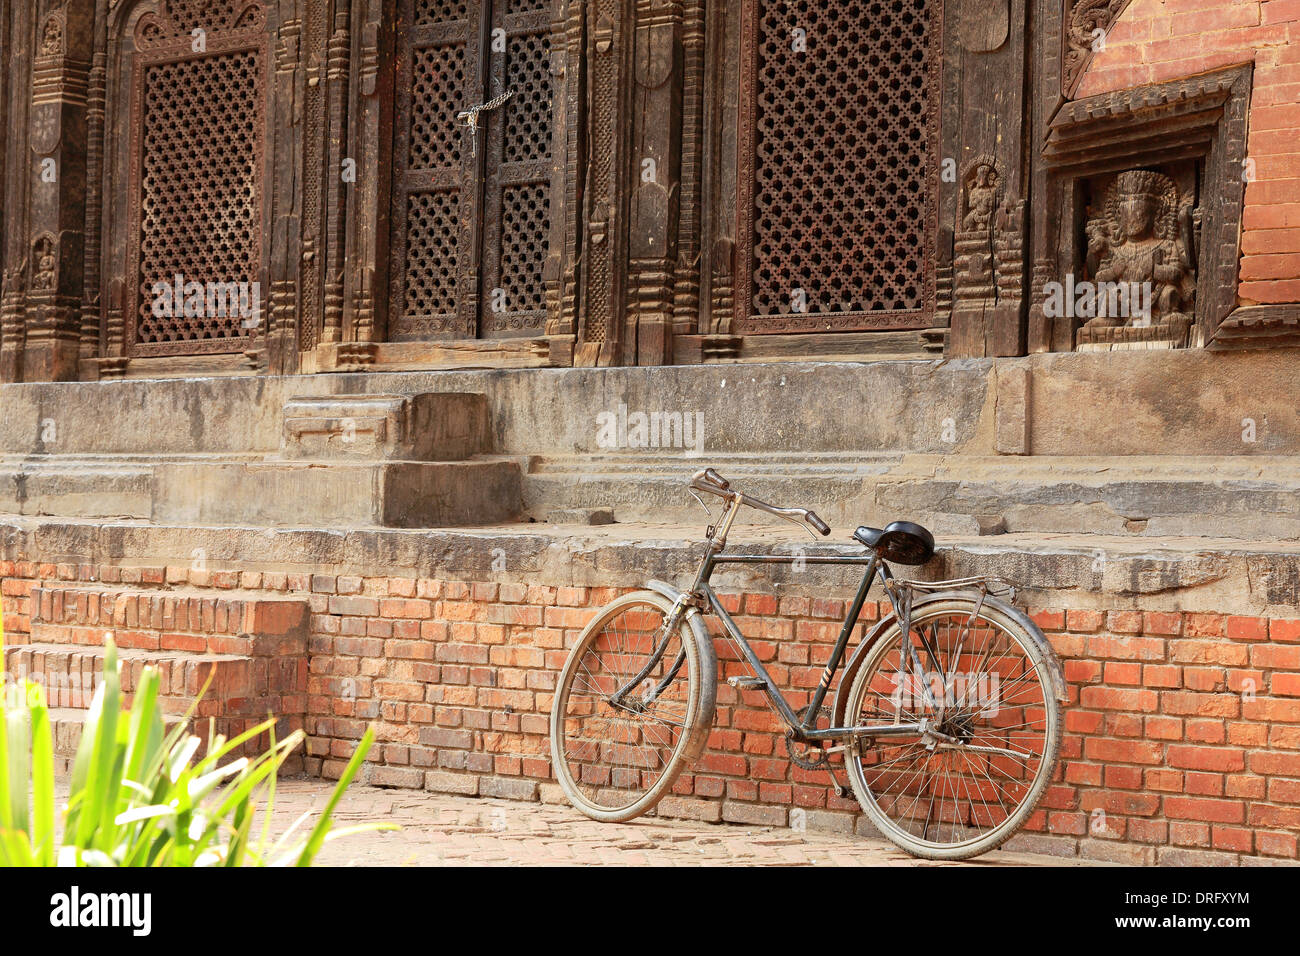 Old bycicle. Pashupatinath temple-Patan-Nepal. - Stock Image